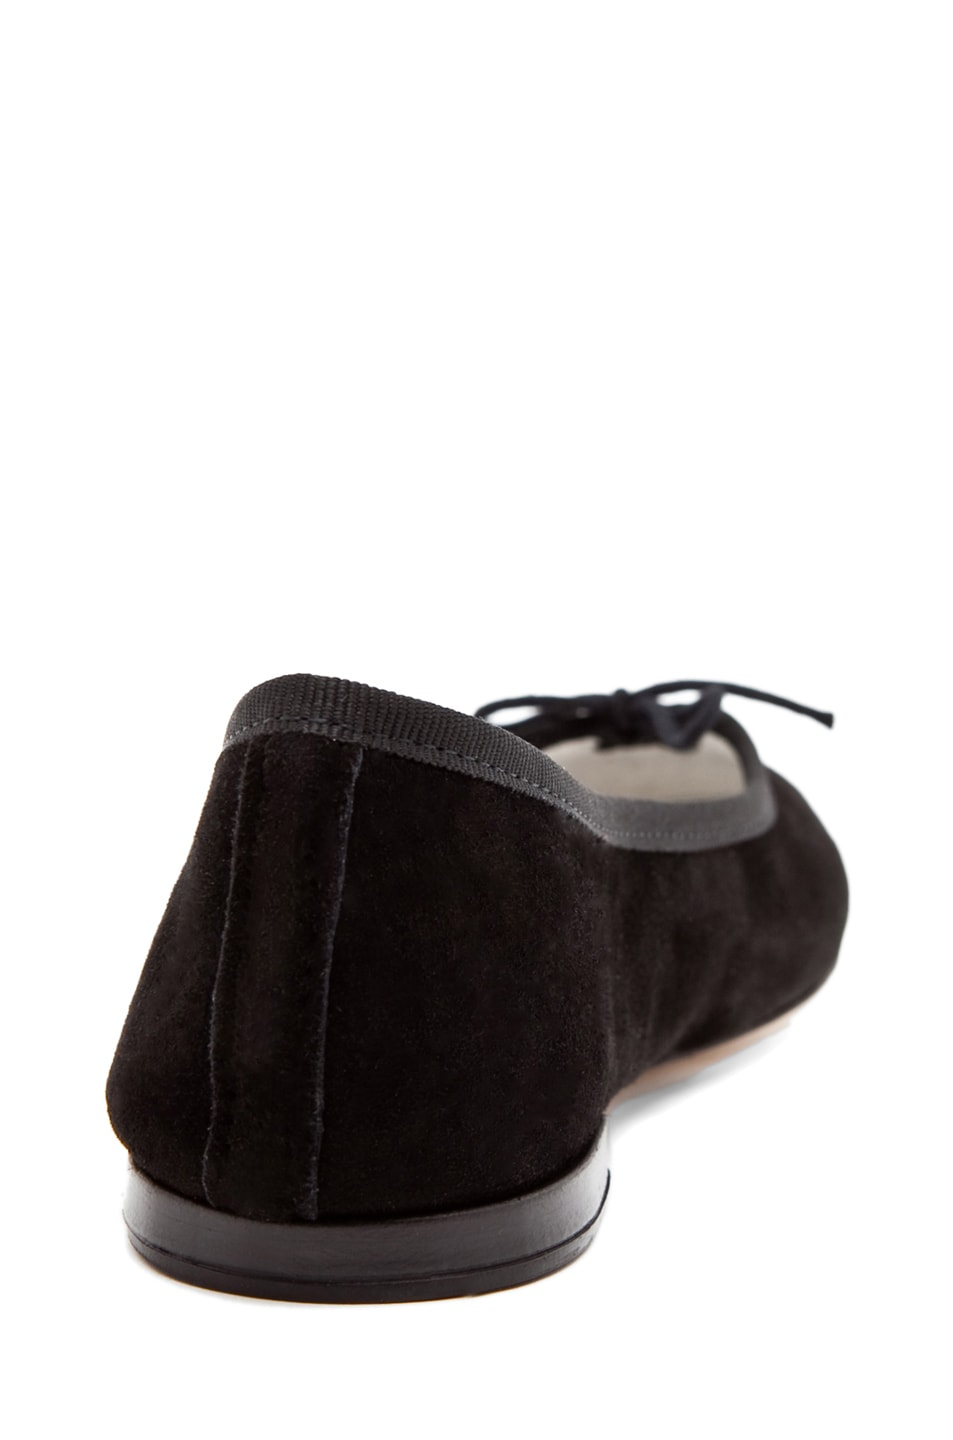 Image 3 of Repetto Suede Flat in Black